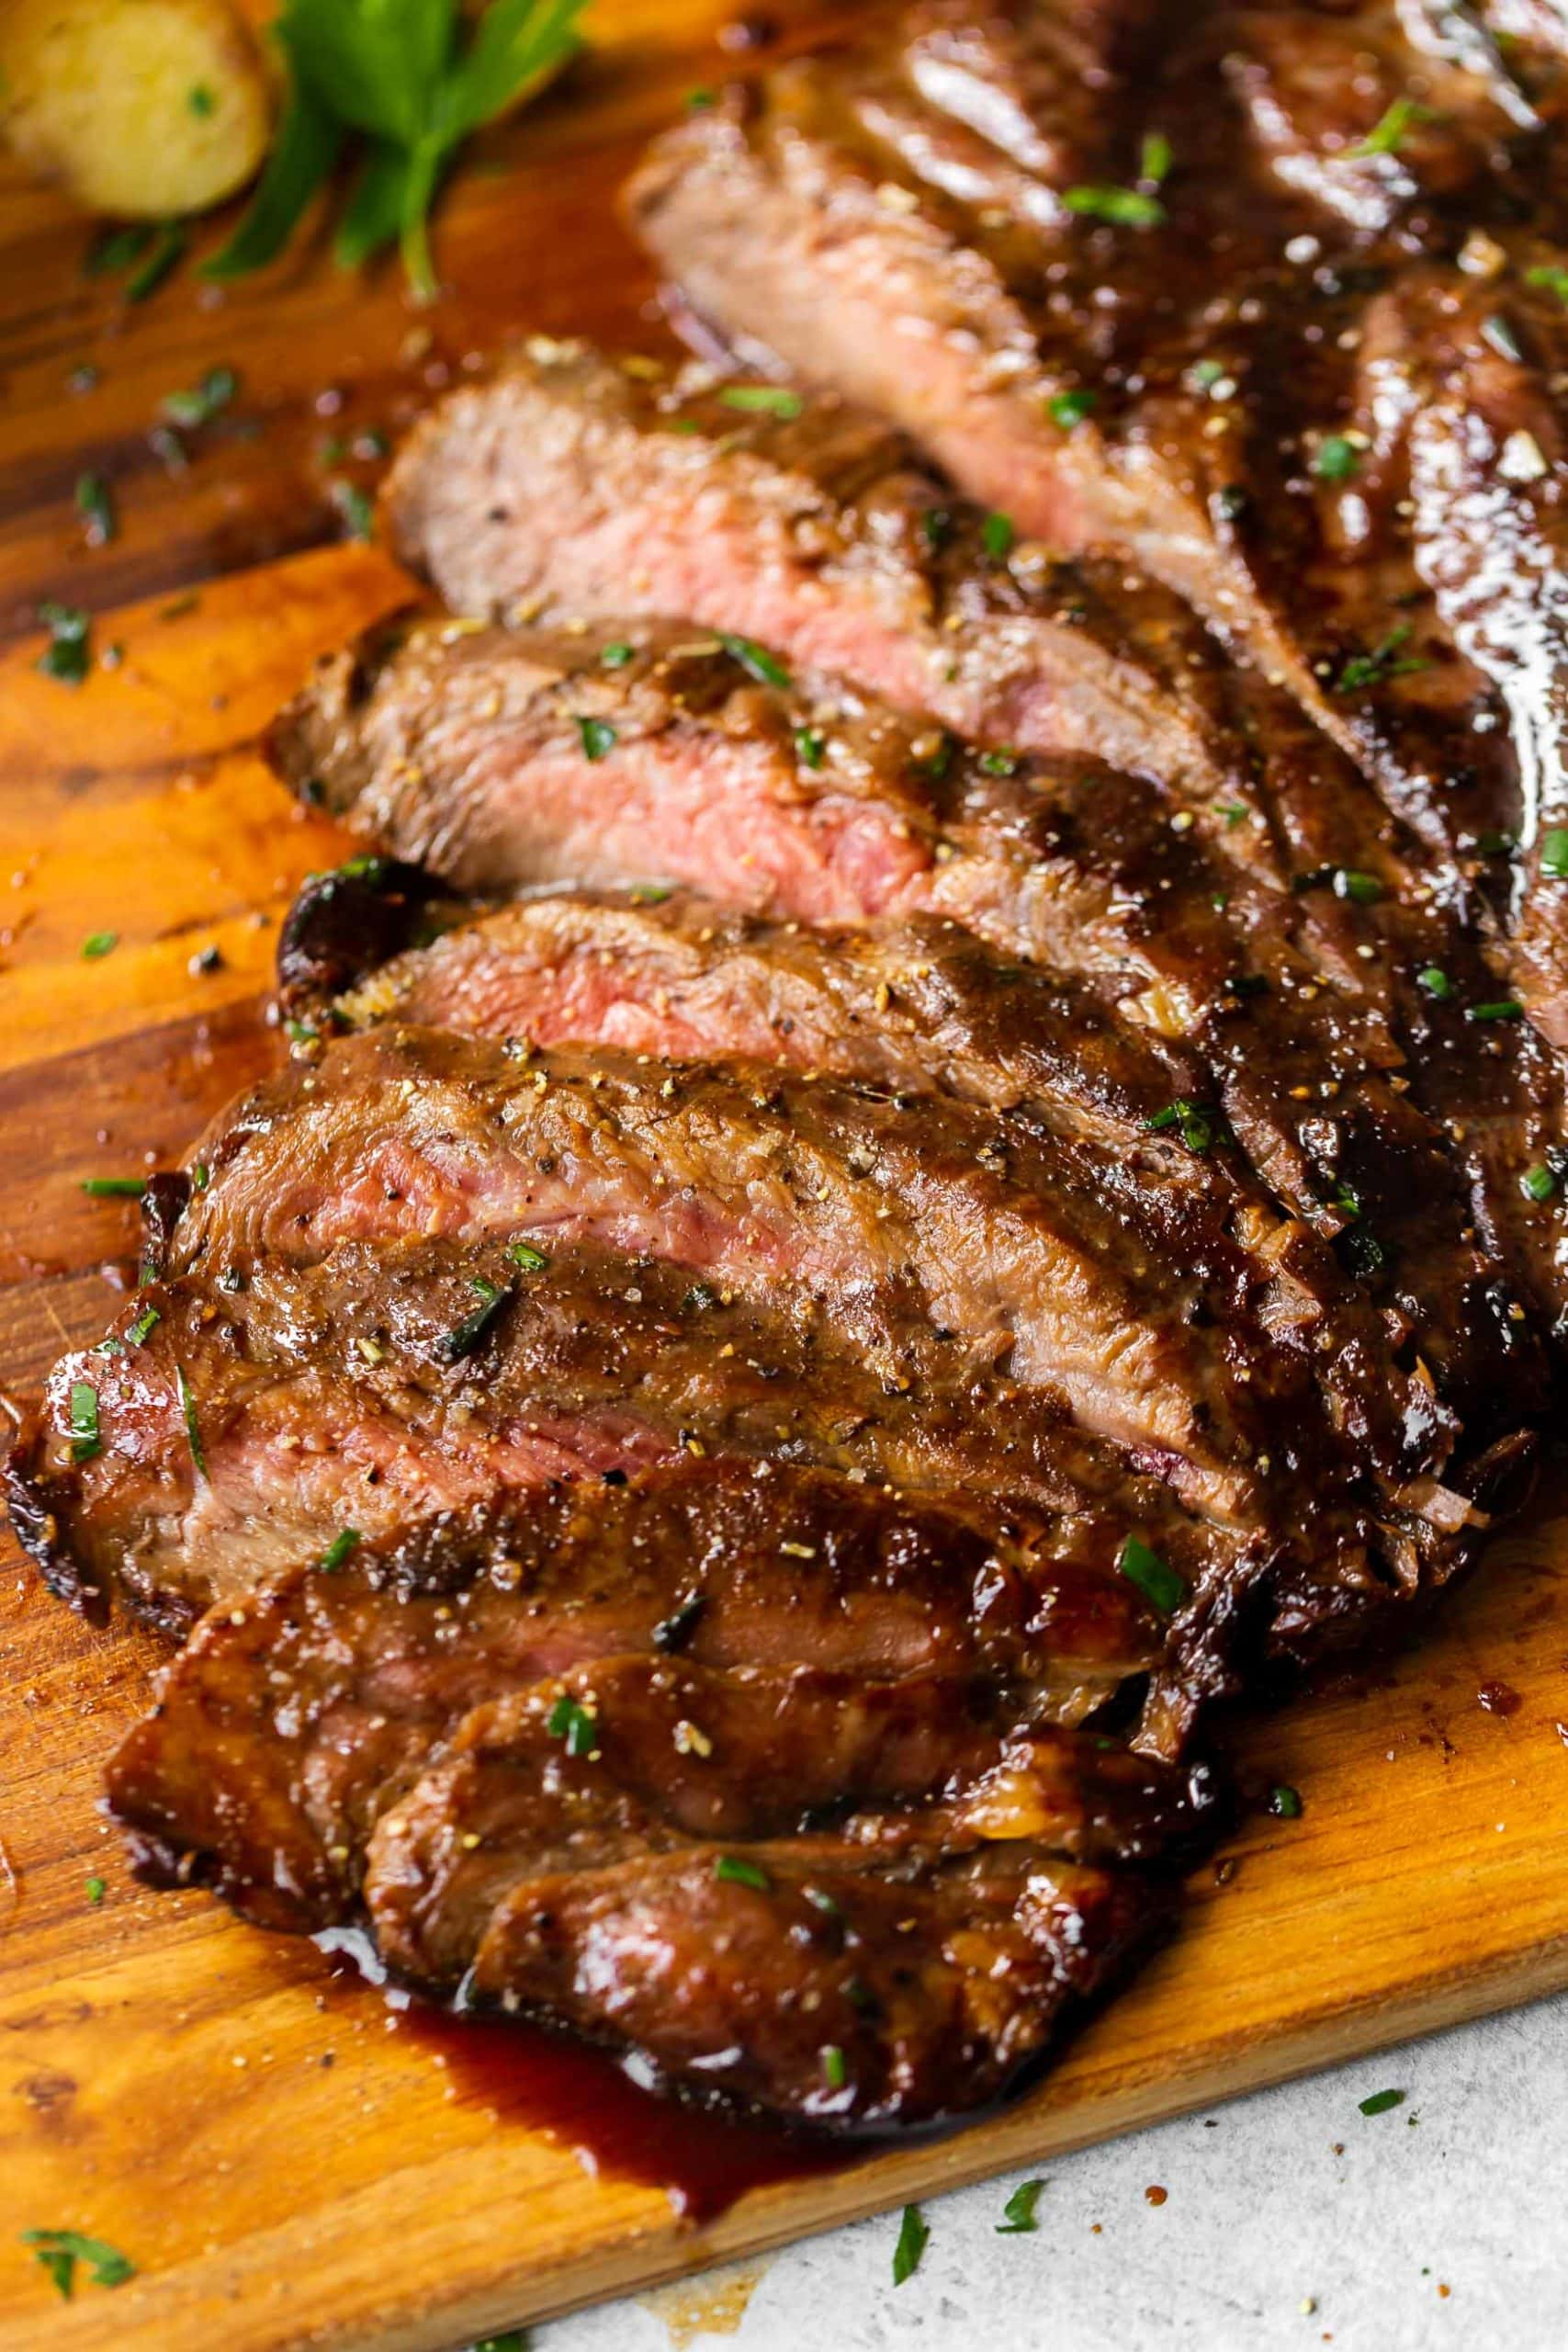 thinly sliced flank steak that marinated in a balsamic marinade all day